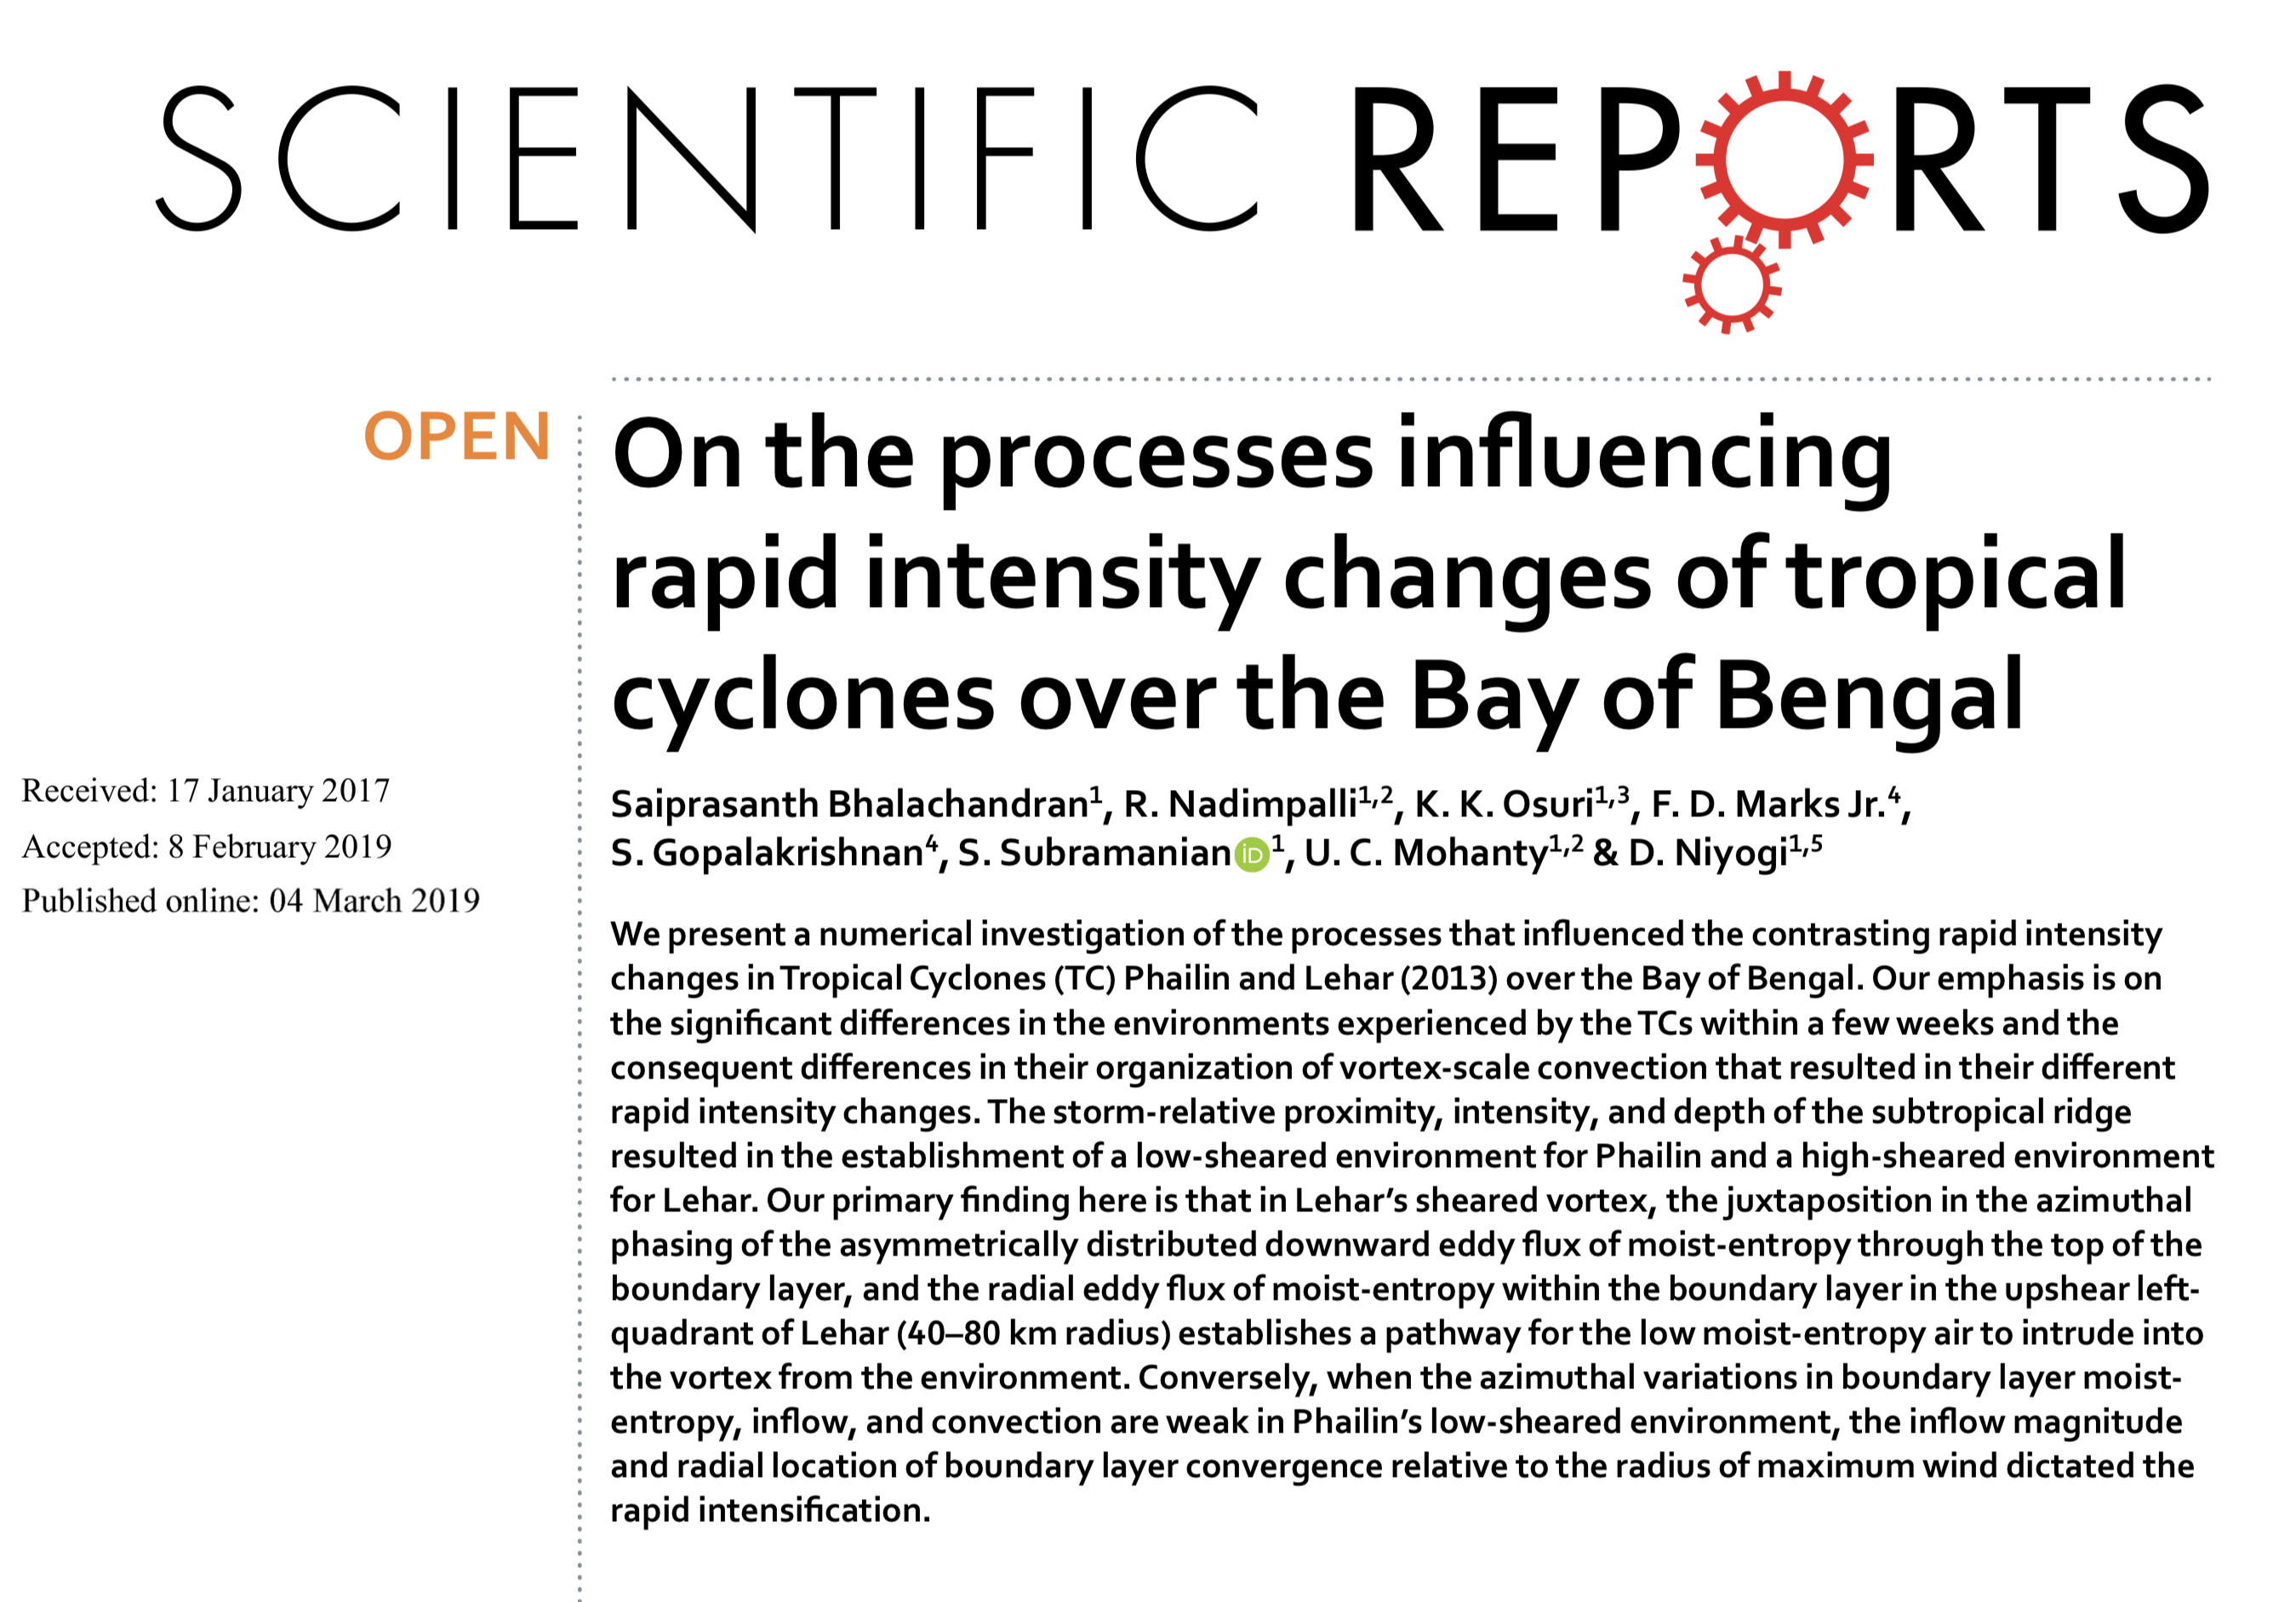 Paper on rapid intensity change in the Bay of Bengal